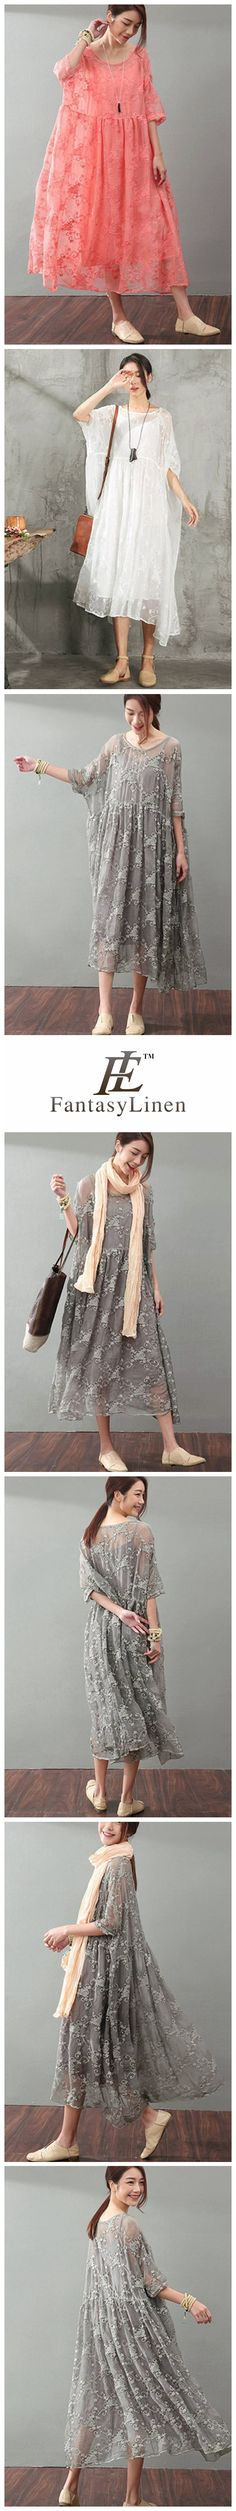 Fabric:                  Fabric has some stretchSeason:                Spring, SummerType:                     DressPattern Type:       PlainSleeve Length:    L